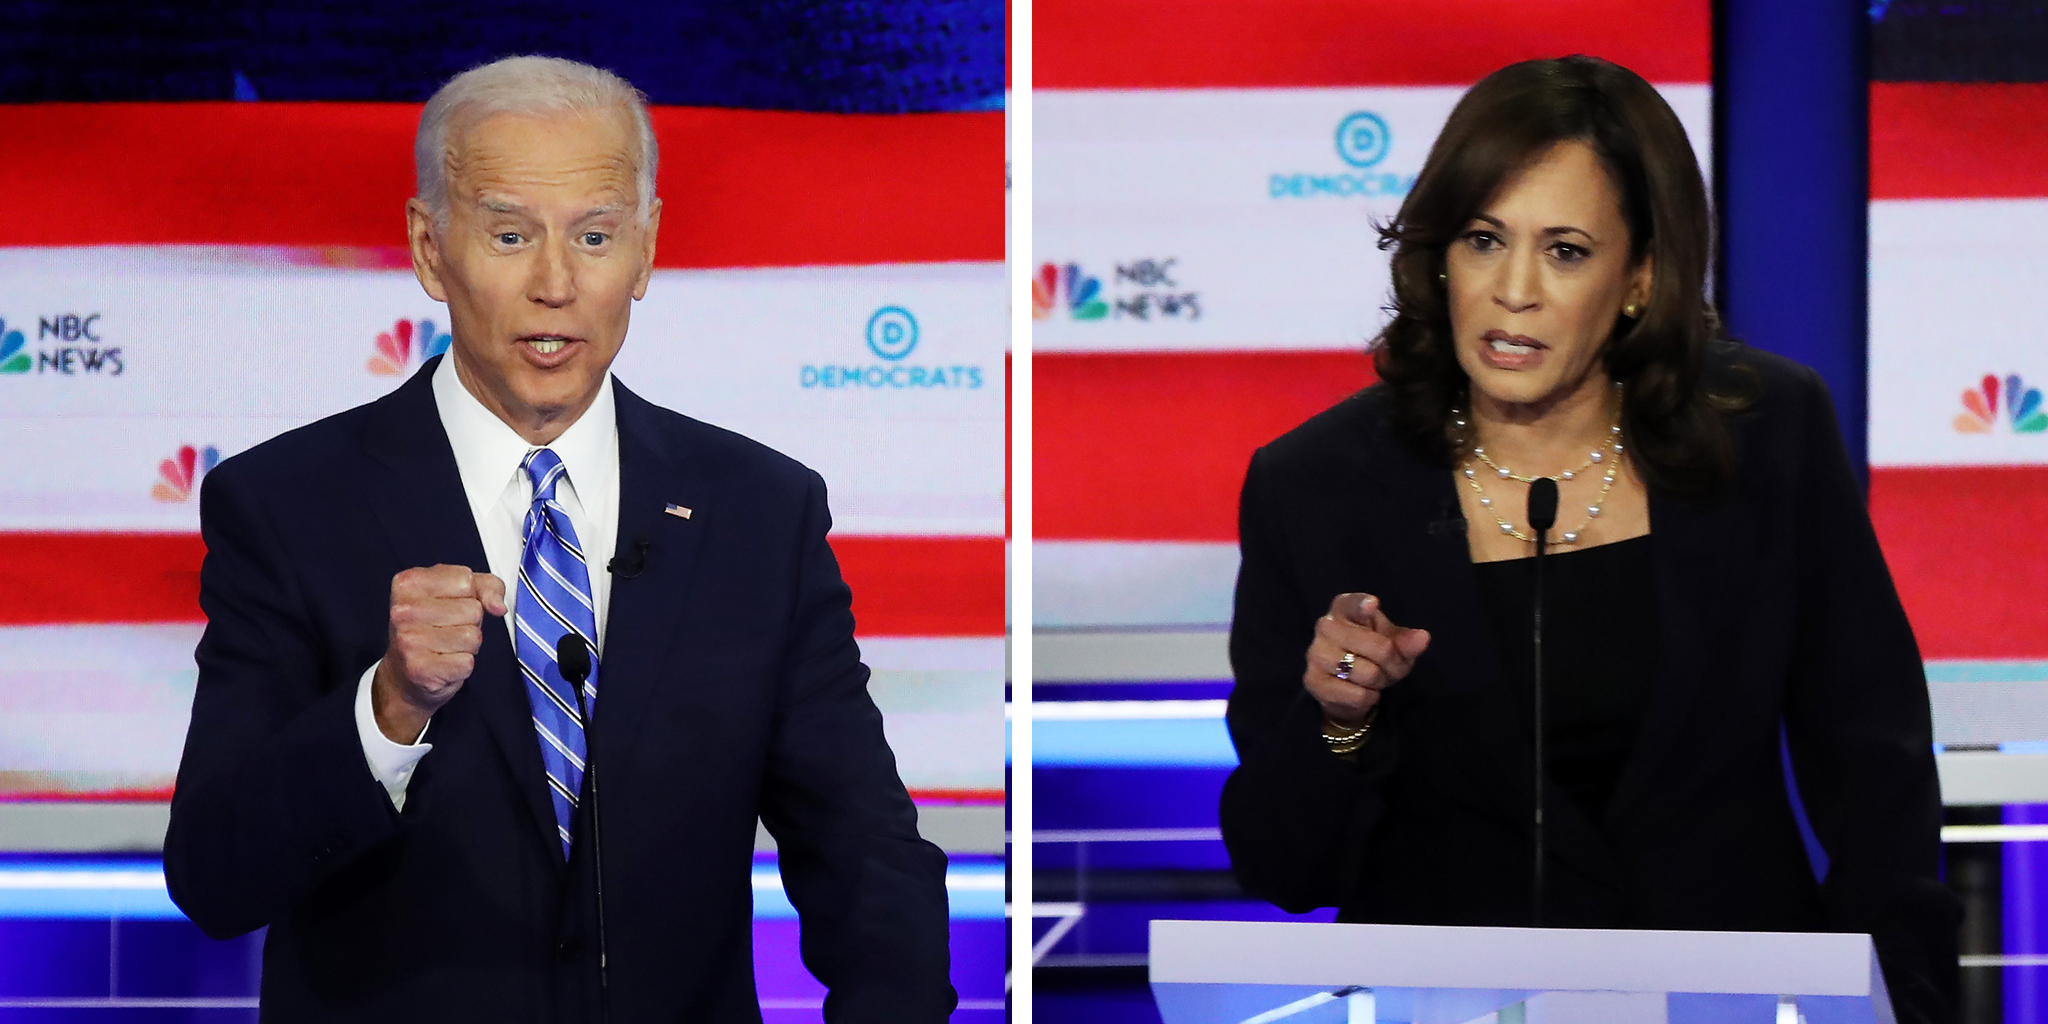 Former Vice President Joe Biden and California Sen. Kamala Harris participate during the second Democratic primary debate of the 2020 presidential campaign season hosted by NBC News at the Adrienne Arsht Center for the Performing Arts in Miami, Florida, June 27, 2019.